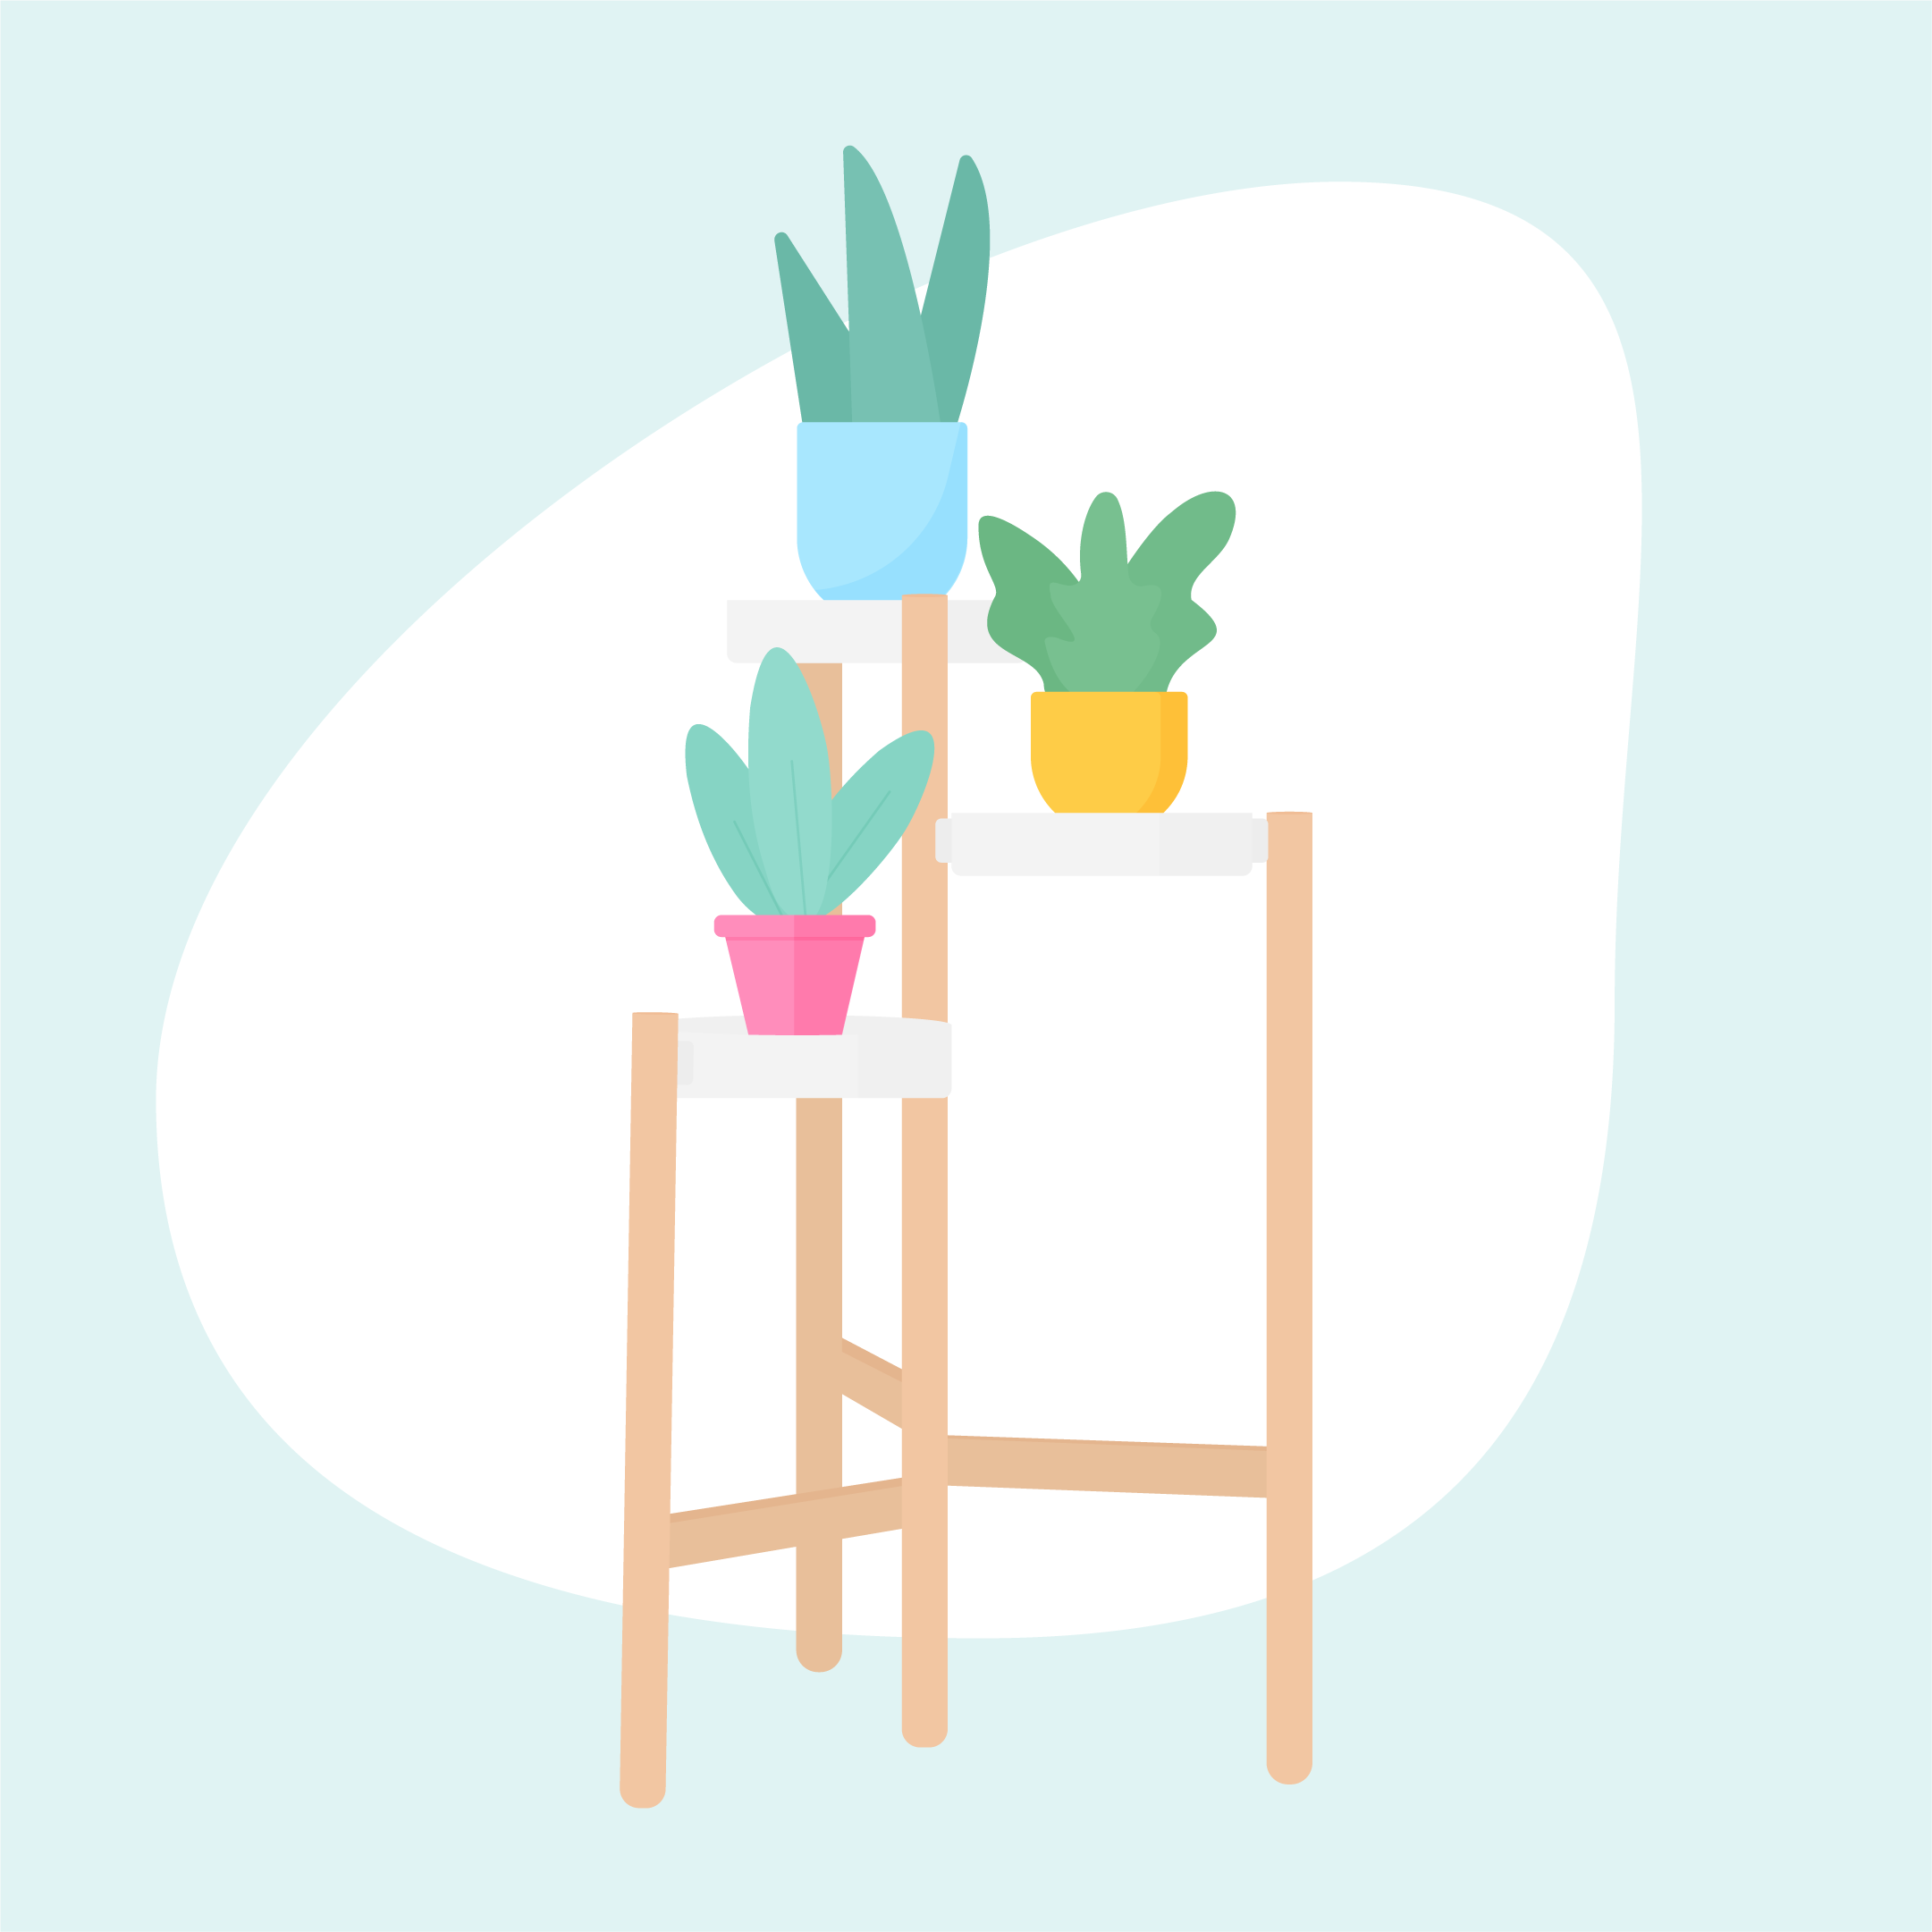 Vector illustration of a wooden Ikea plant stand with shelves & three potted flowers in flat design style